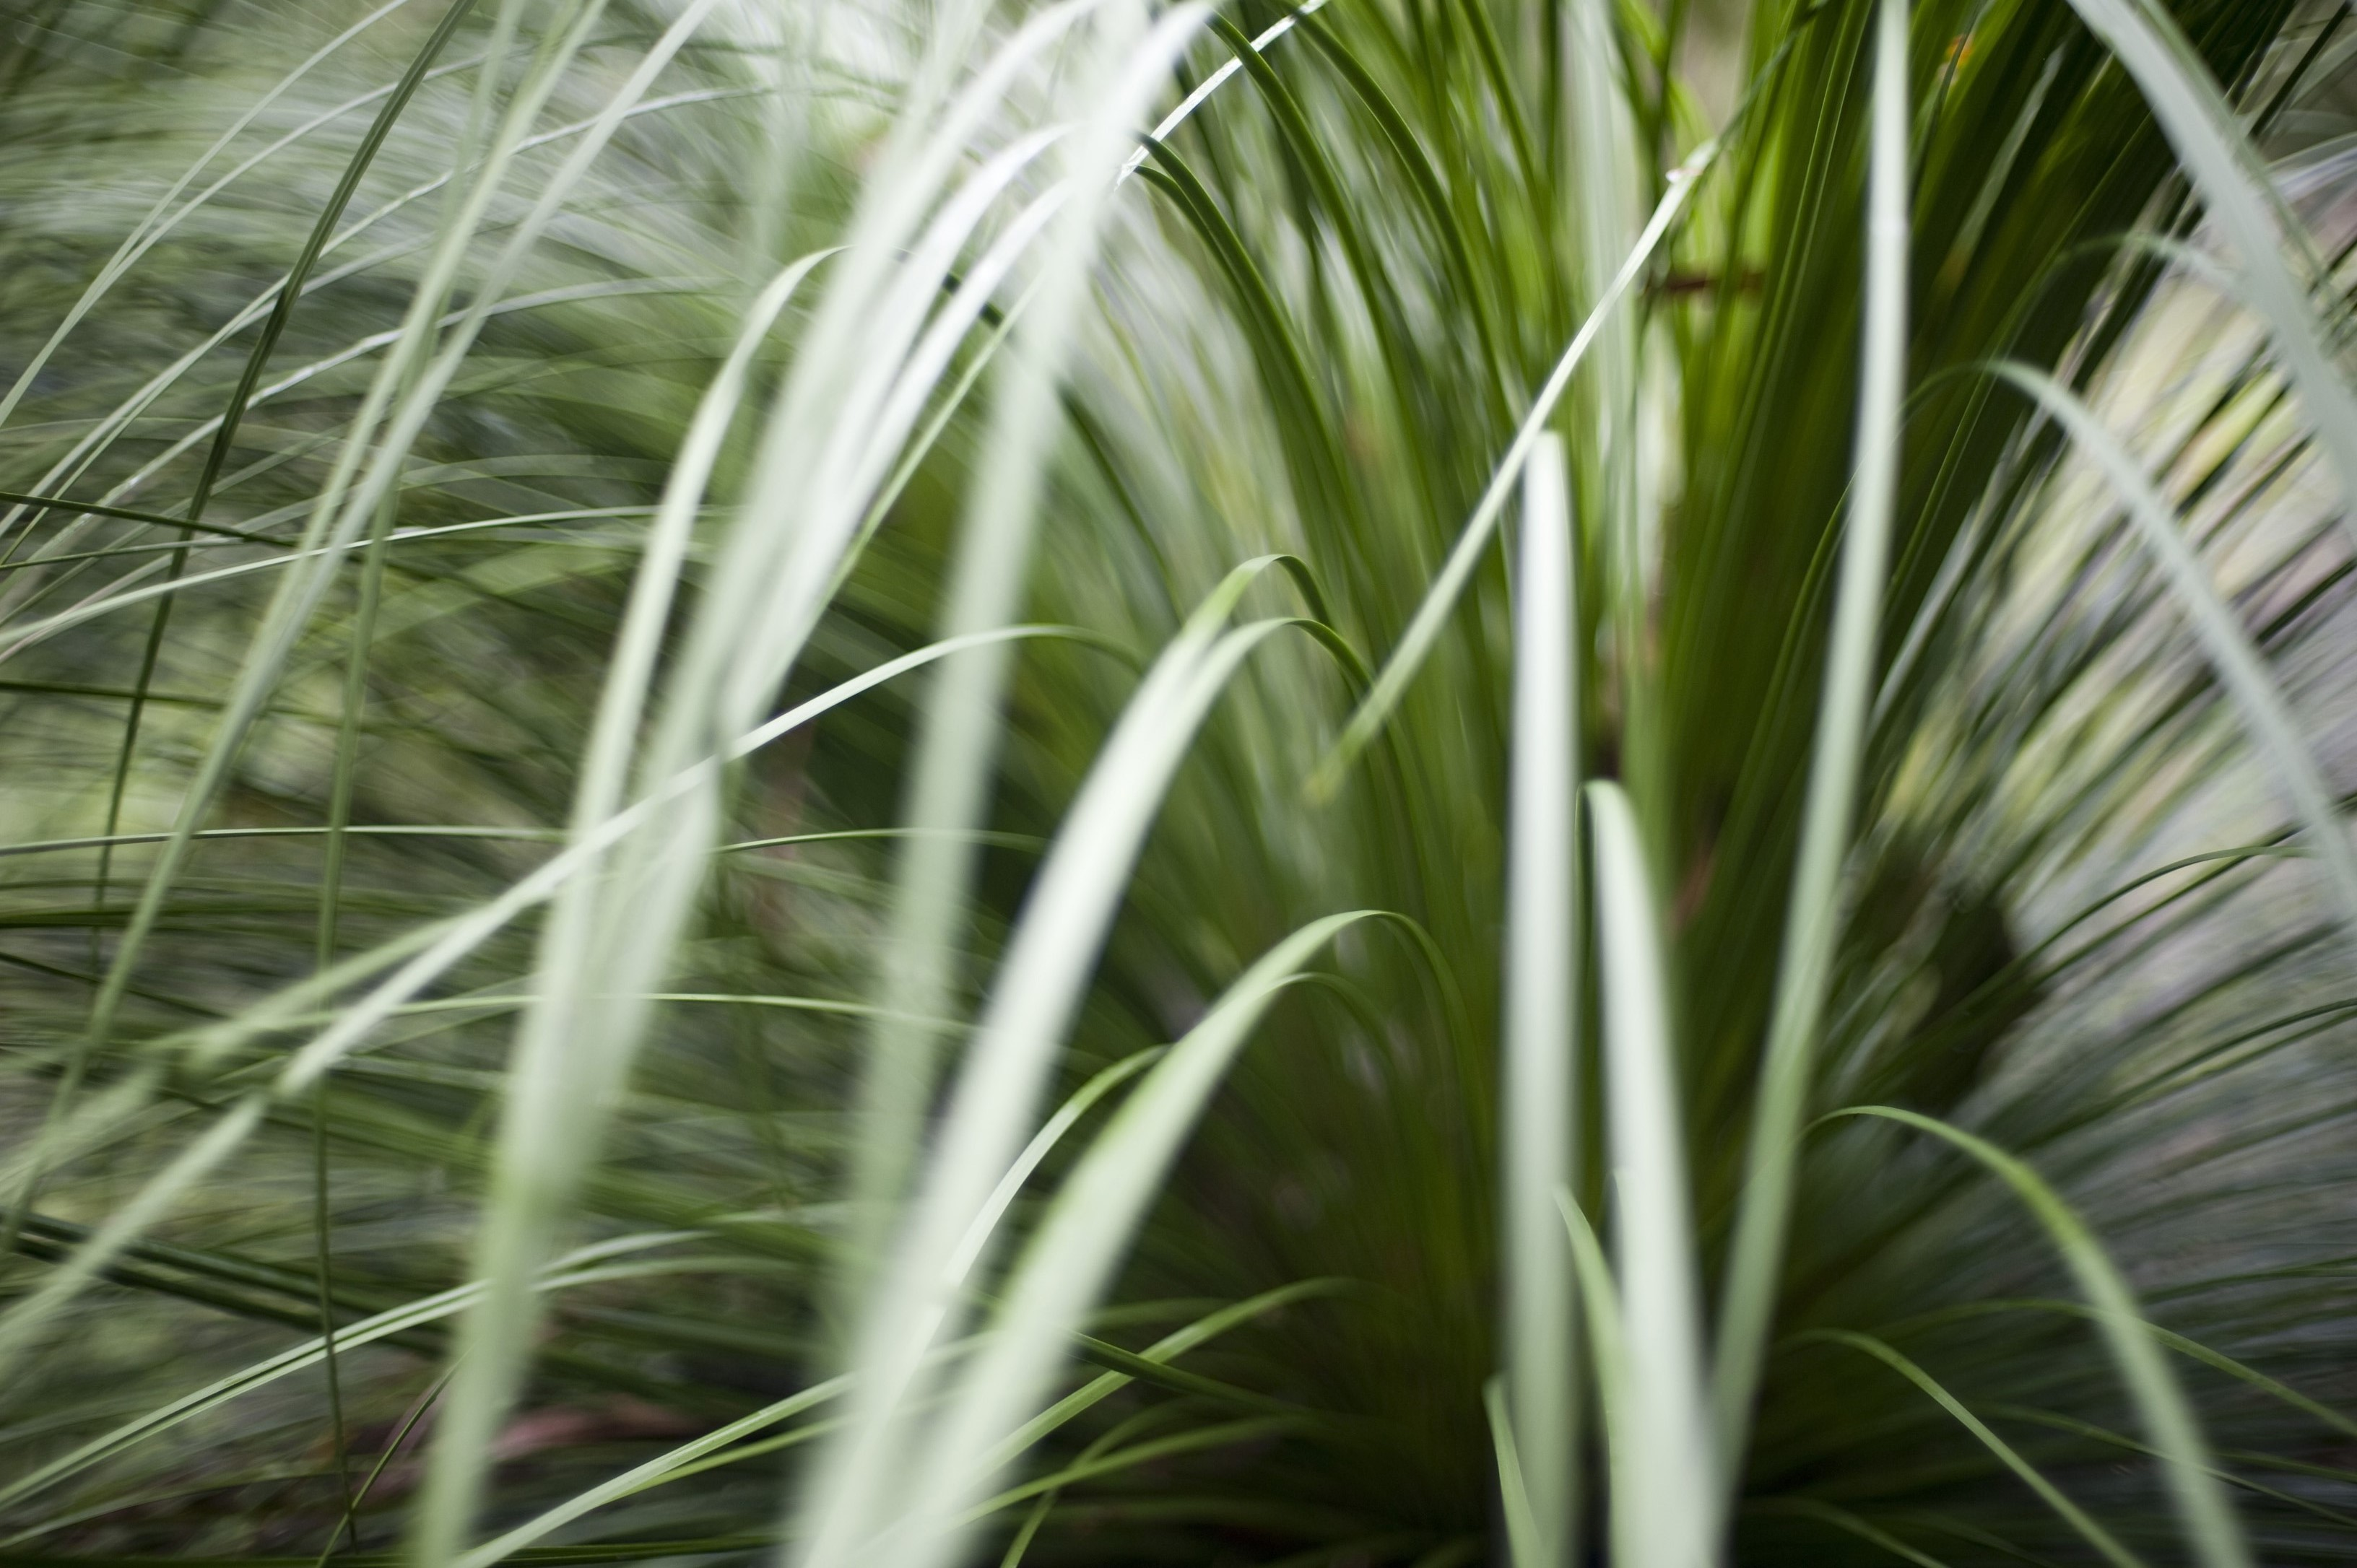 Soft focus nature background of fresh green grass fronds or blades curving gracefully towards the camera